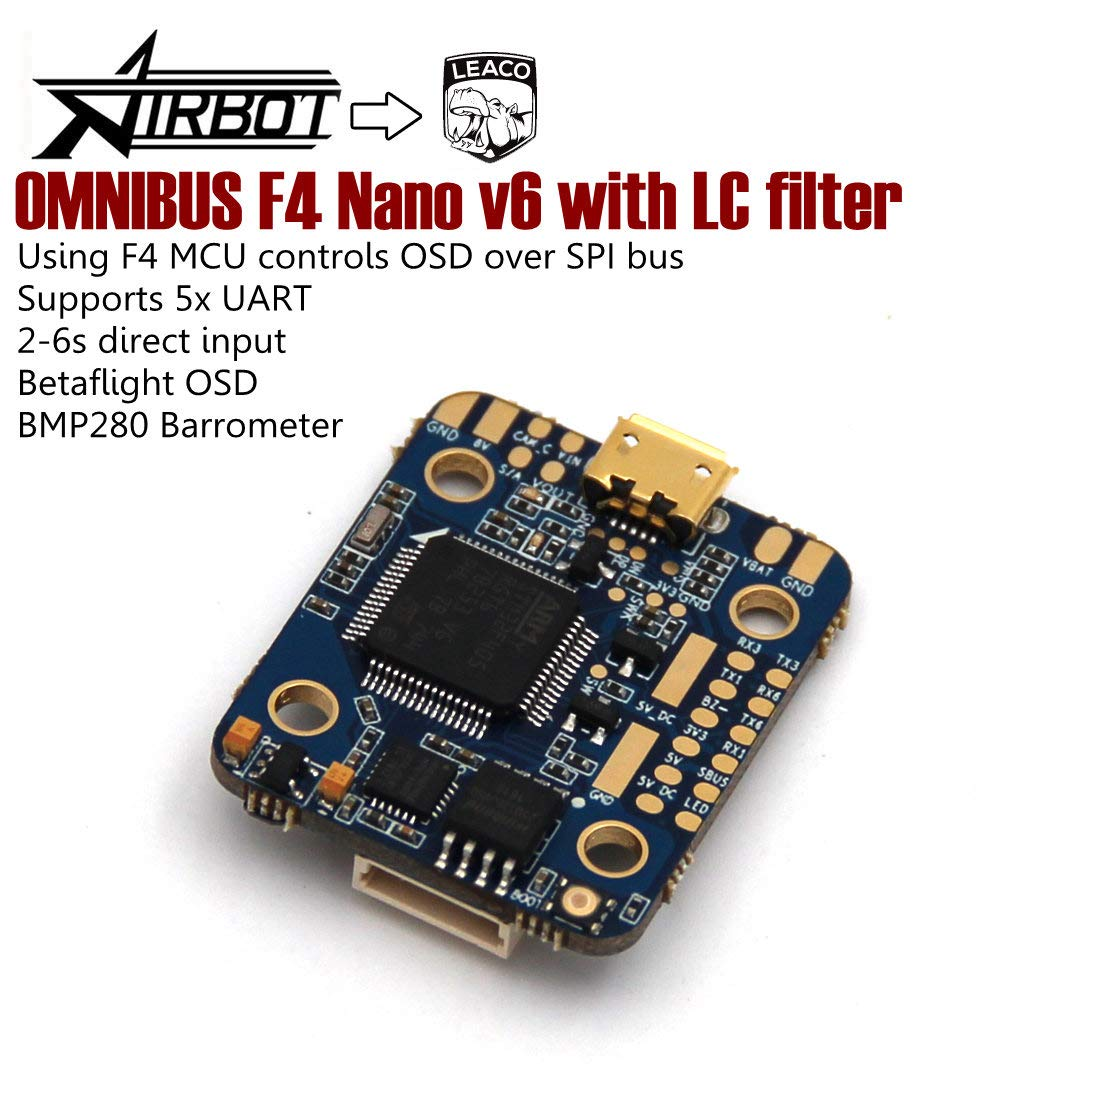 Airbot Omnibus F4 Nano v6 with LC Filter Flight Controller uses The MPU6000  Over SPI for The Stable Flight Performance LEACO